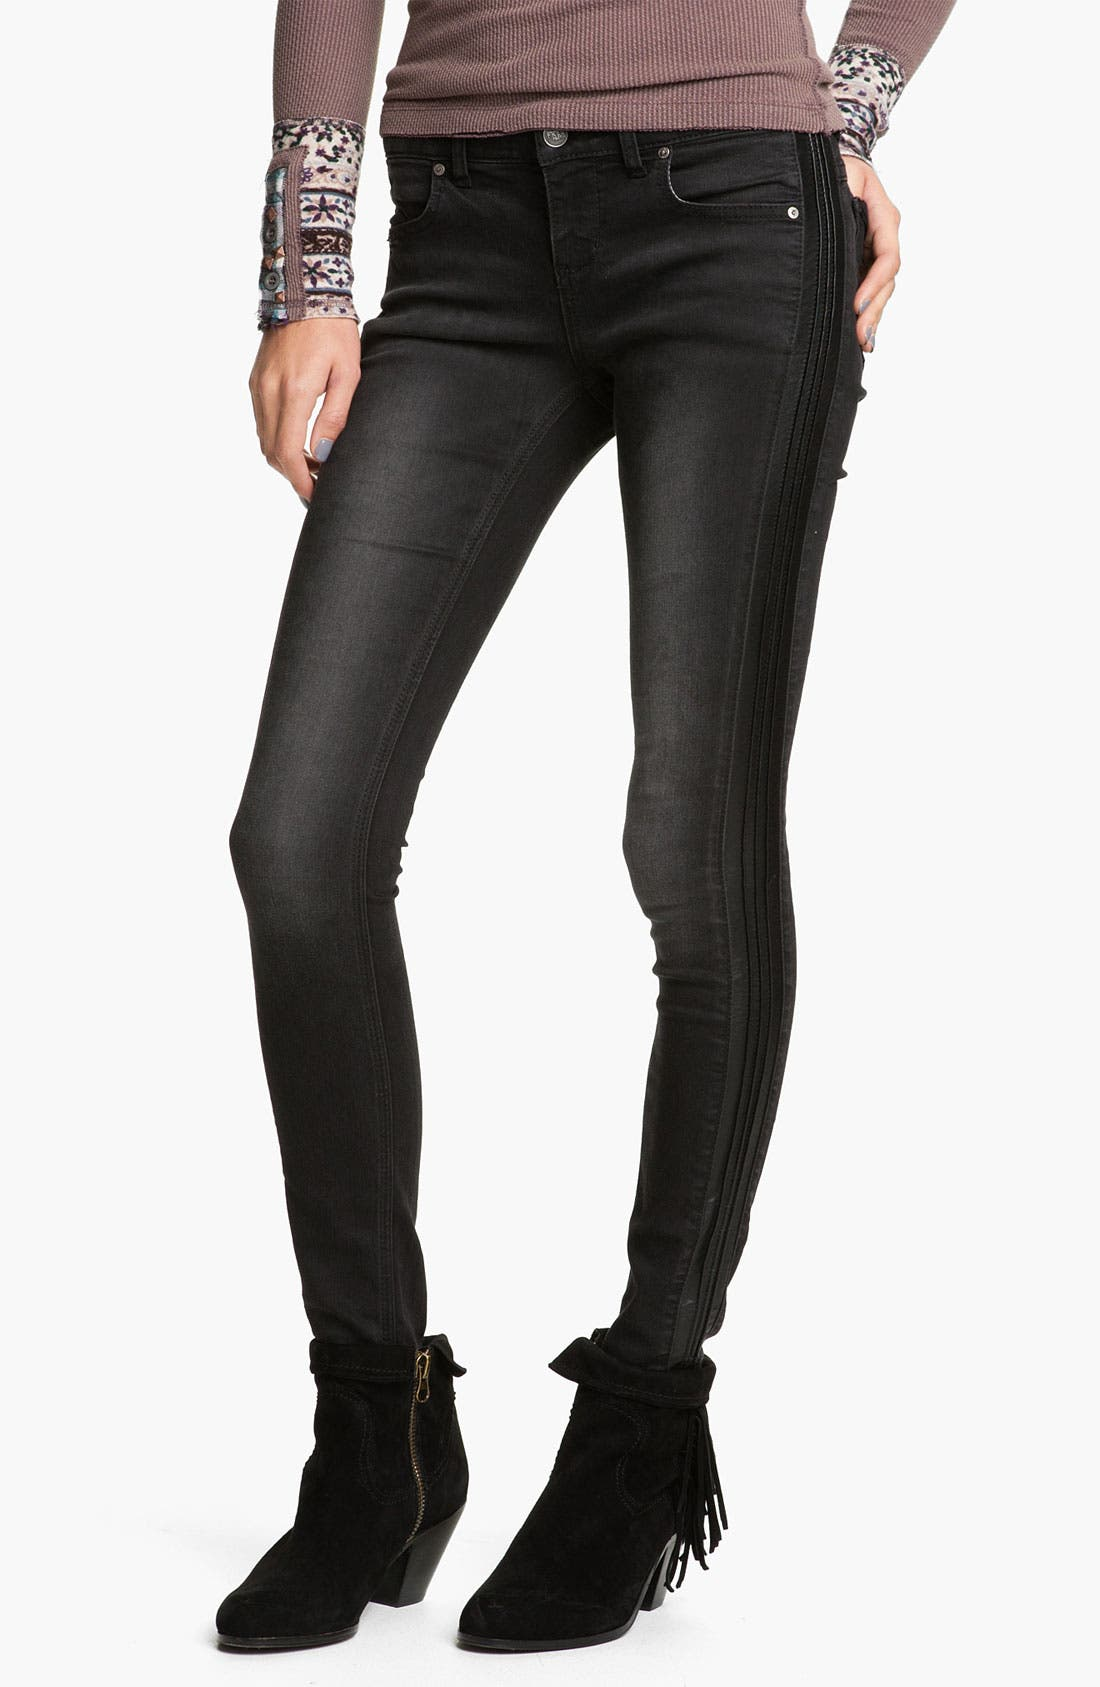 Alternate Image 1 Selected - Free People Faux Leather Trim Skinny Jeans (Abyss)